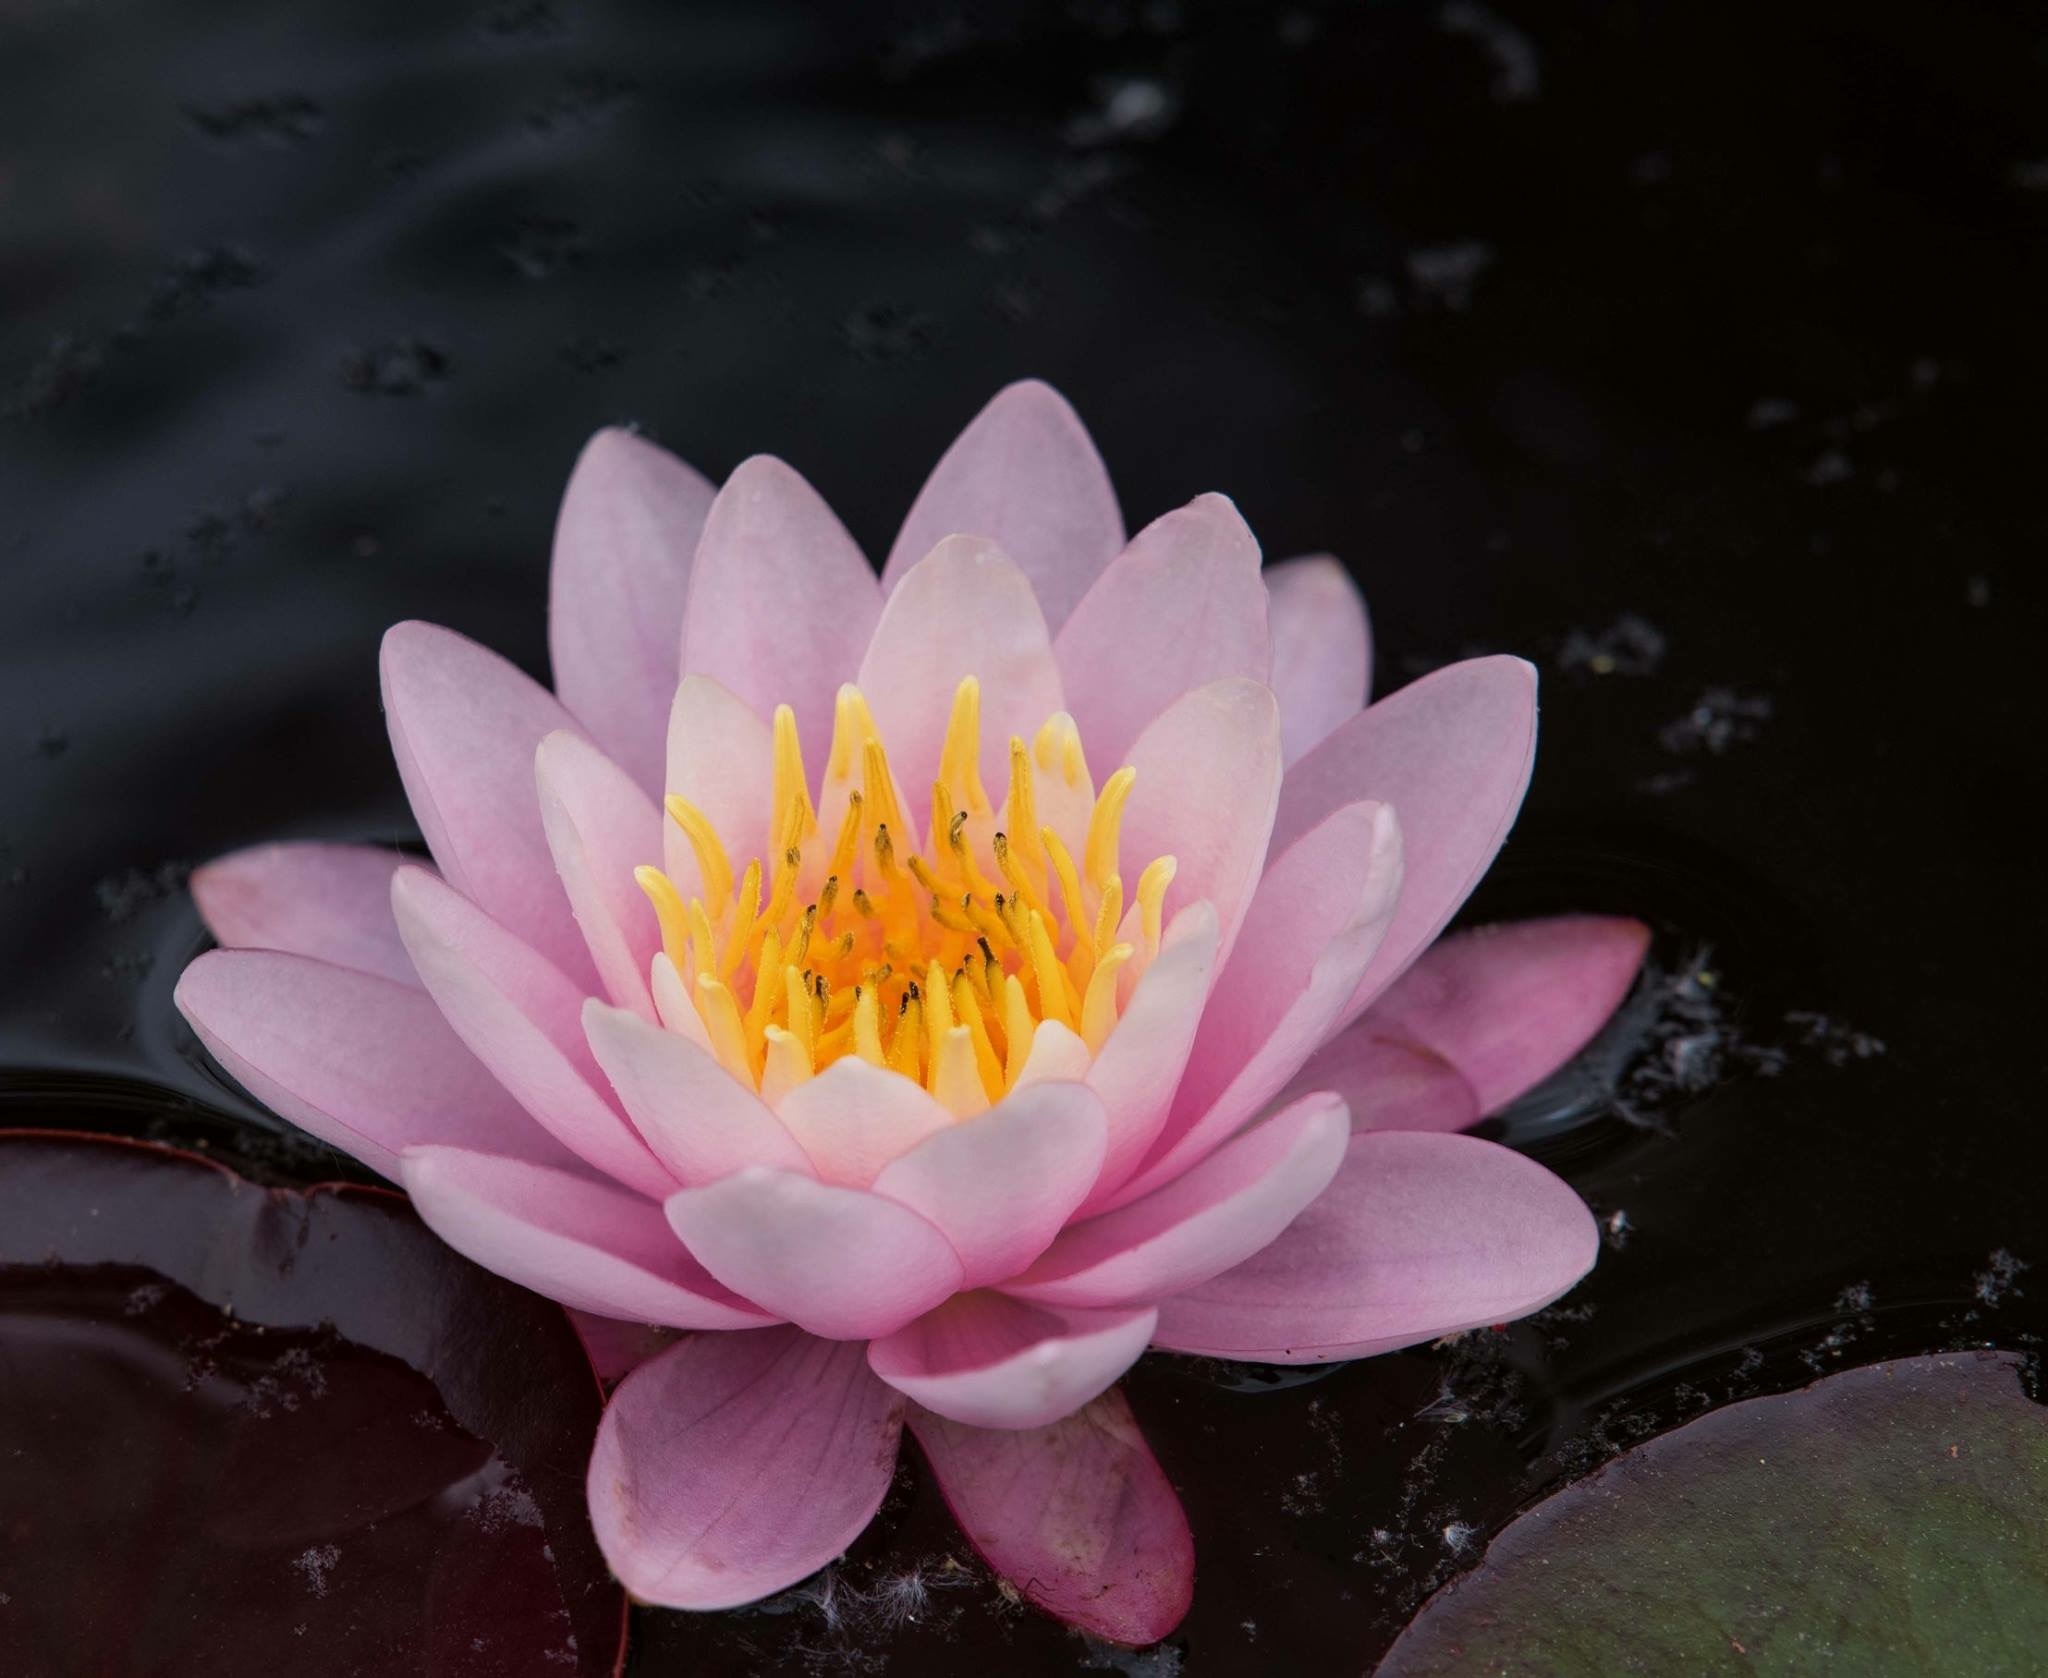 Water lily by Valerie Dyer